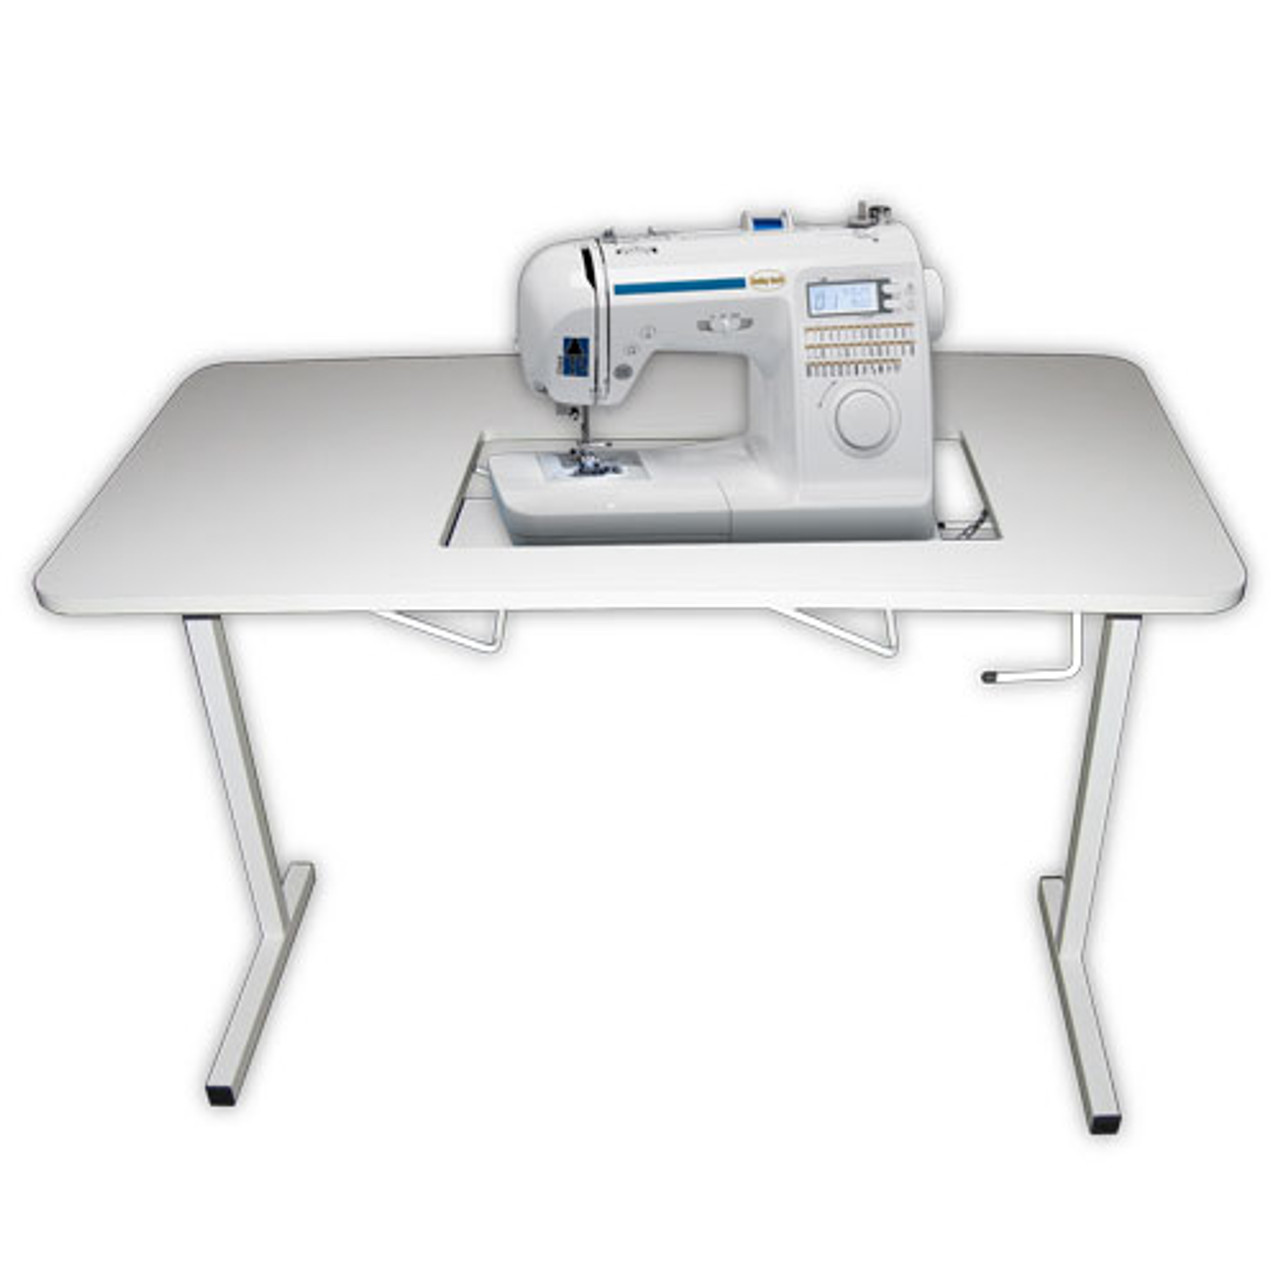 Portable Sewing Machine Table.Sullivans Portable Folding Sewing Table Model 12889